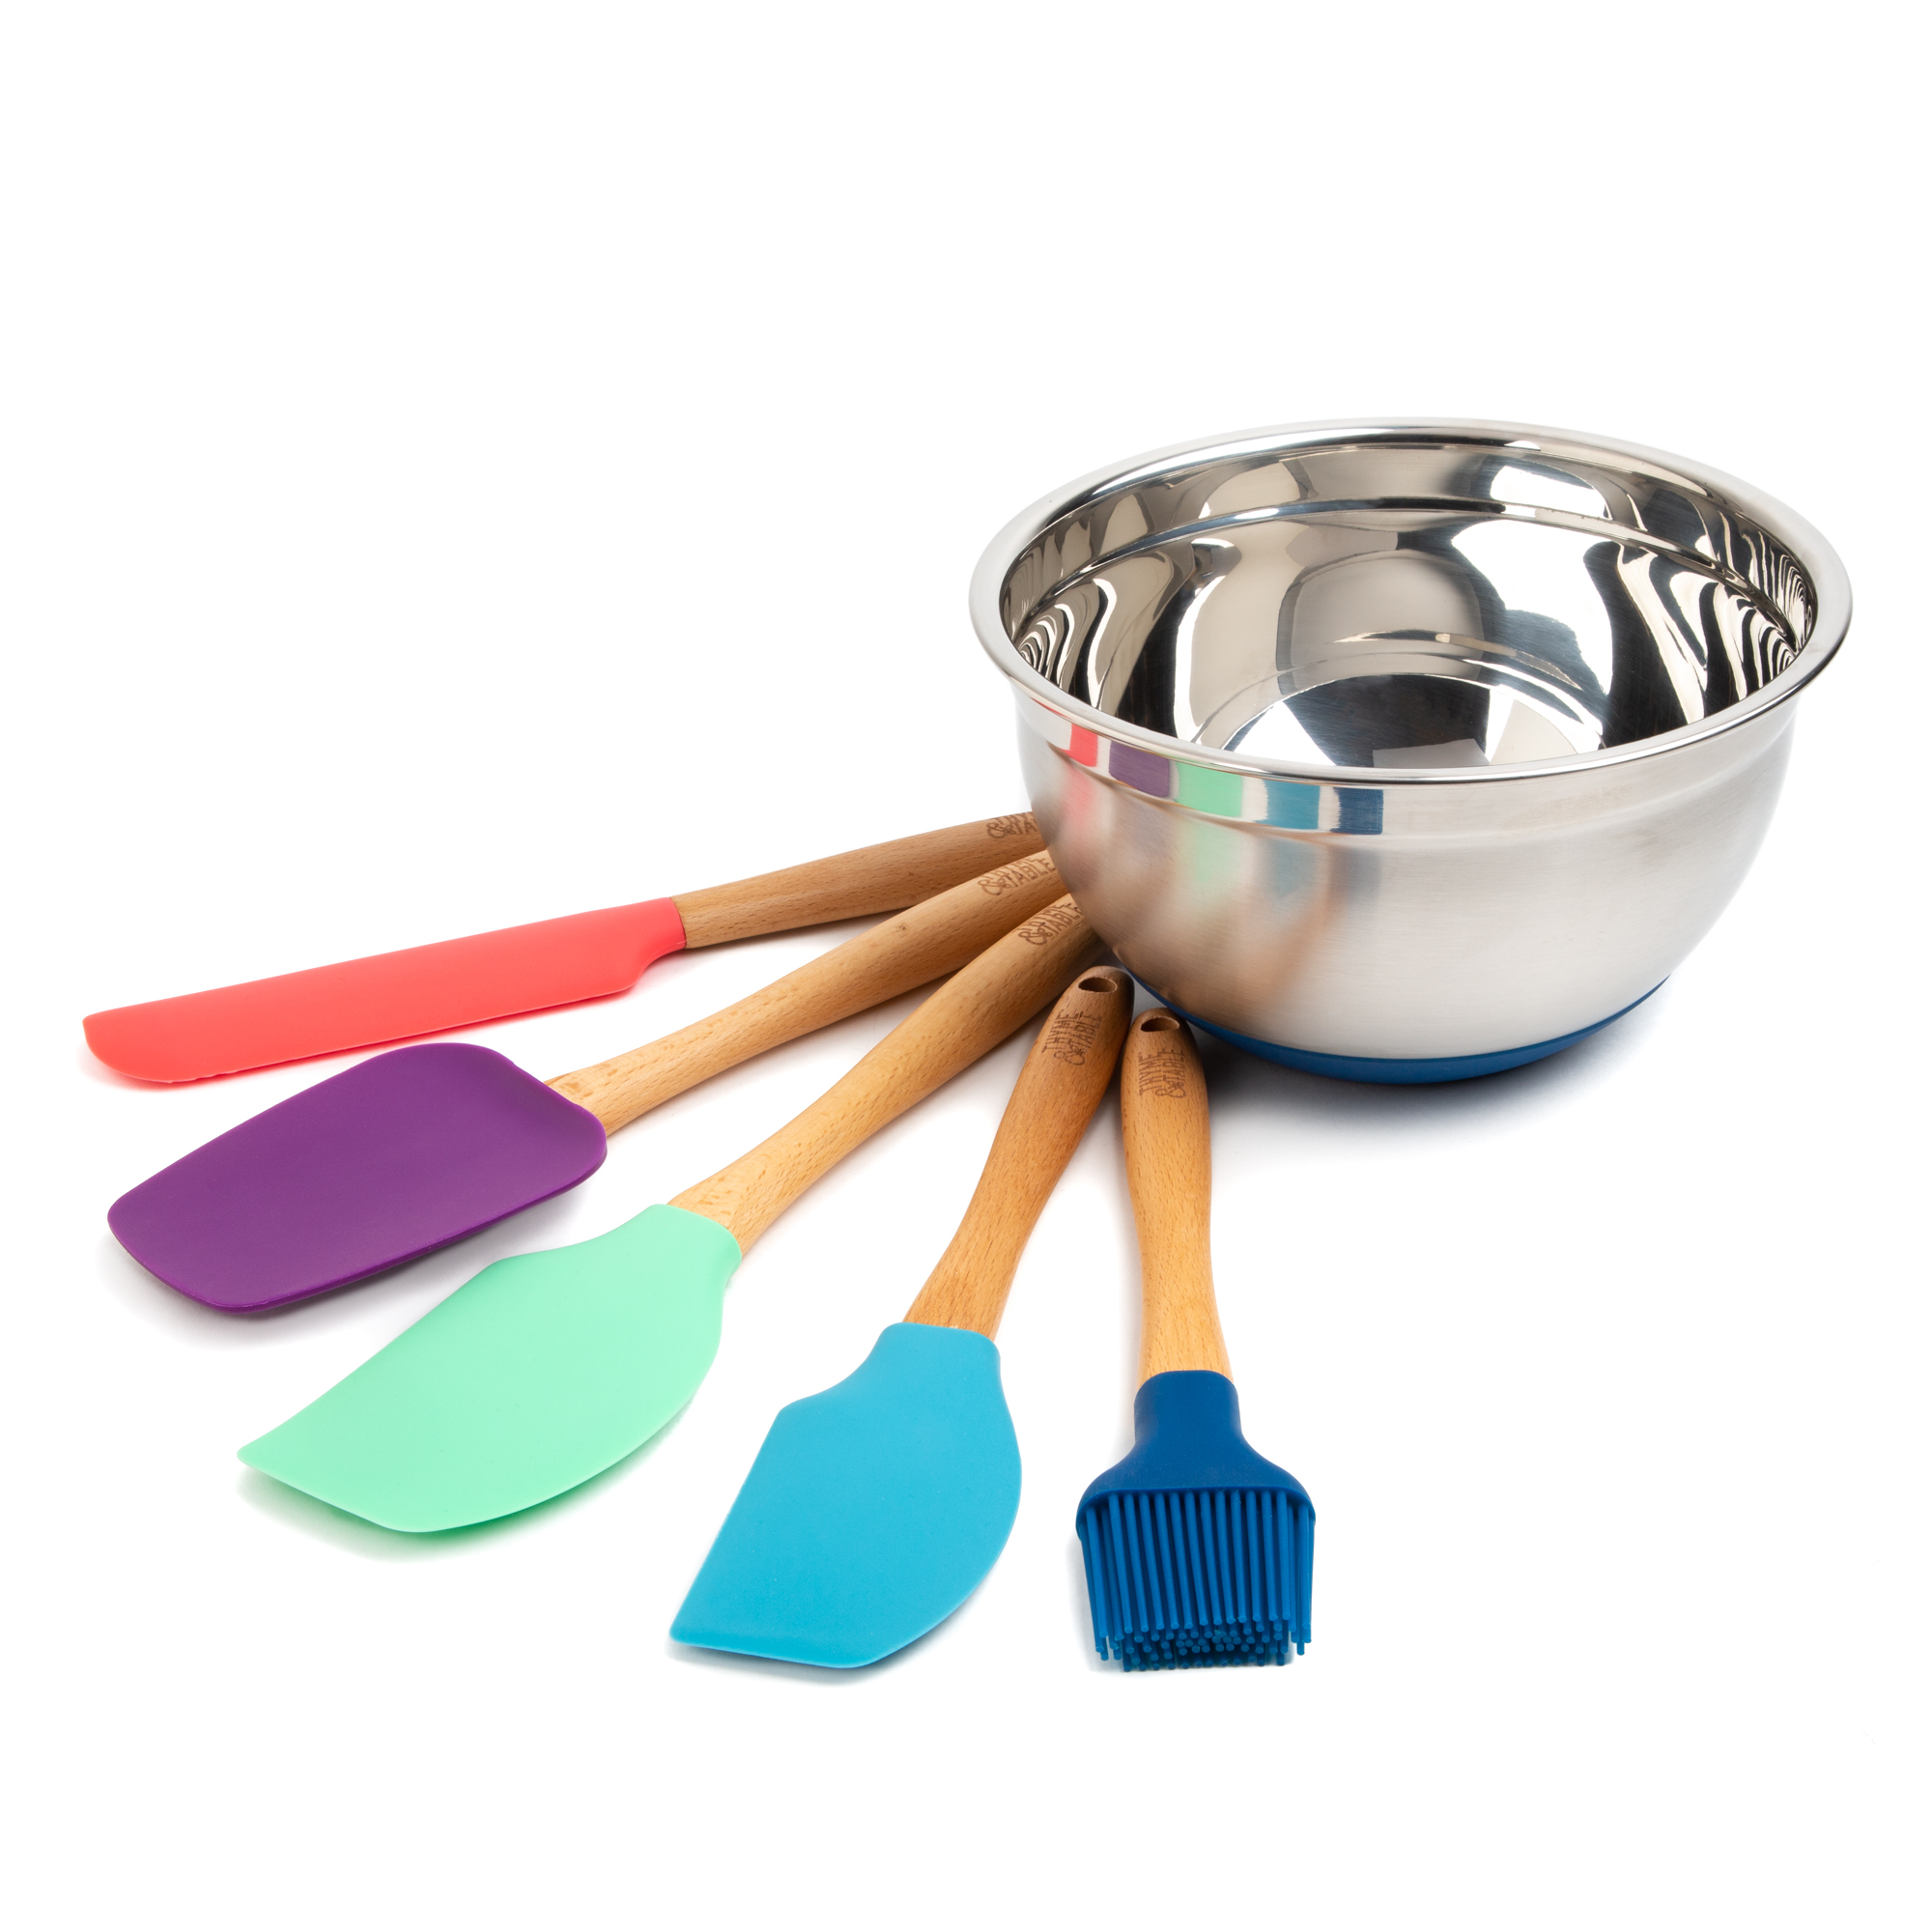 Thyme and Table 6-Piece Kitchen Utensil and Mixing Bowl Set